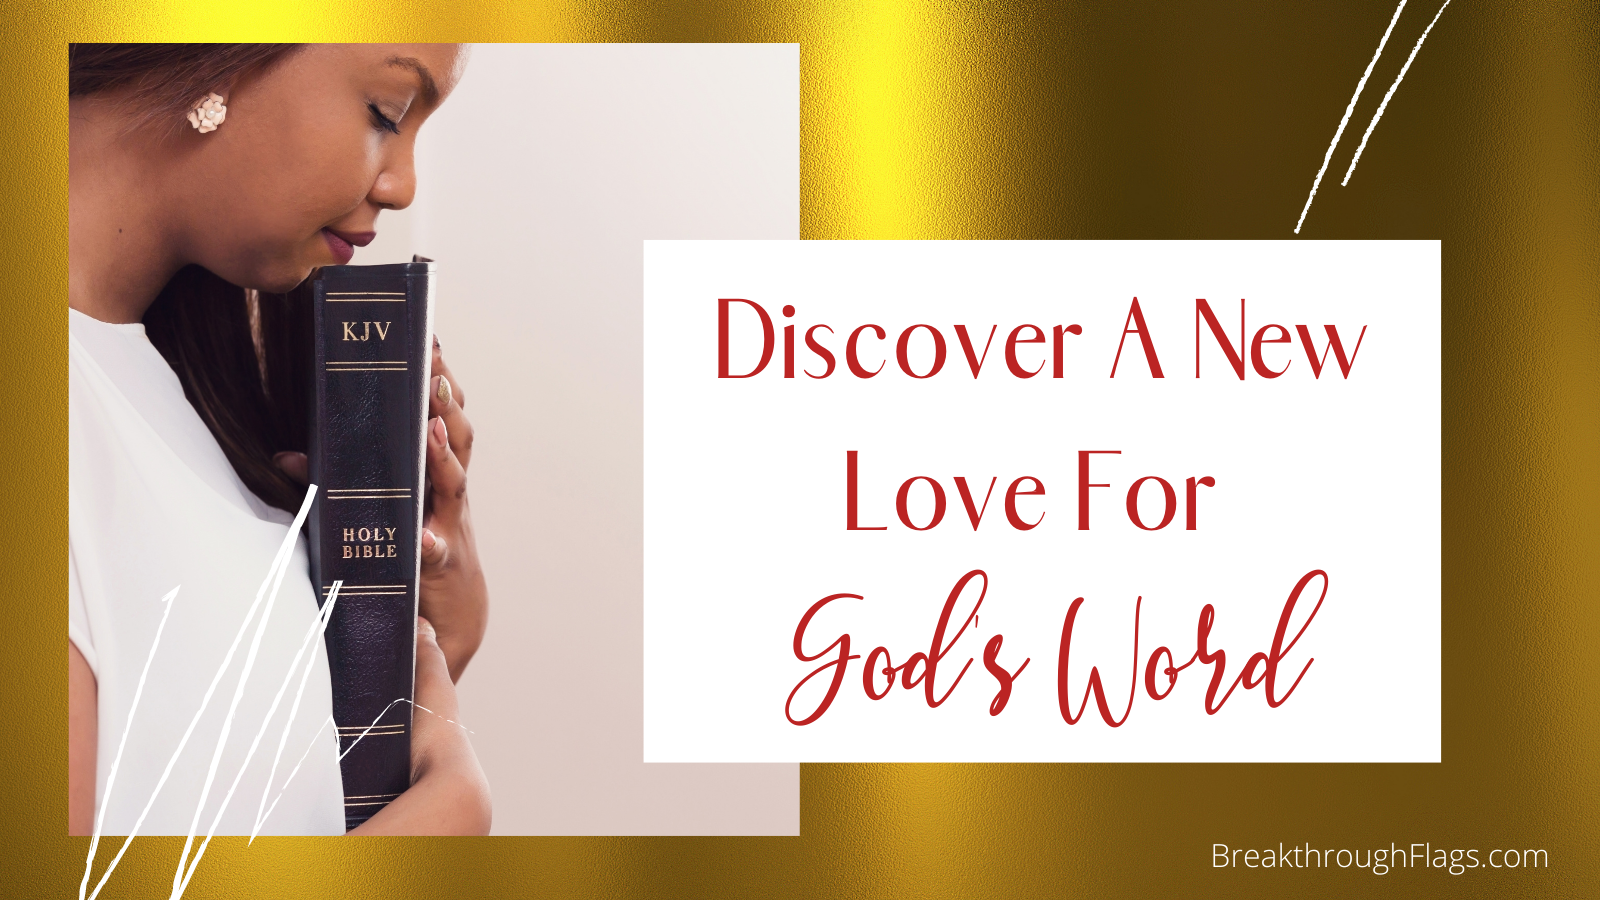 Discover a New Love for God's Word